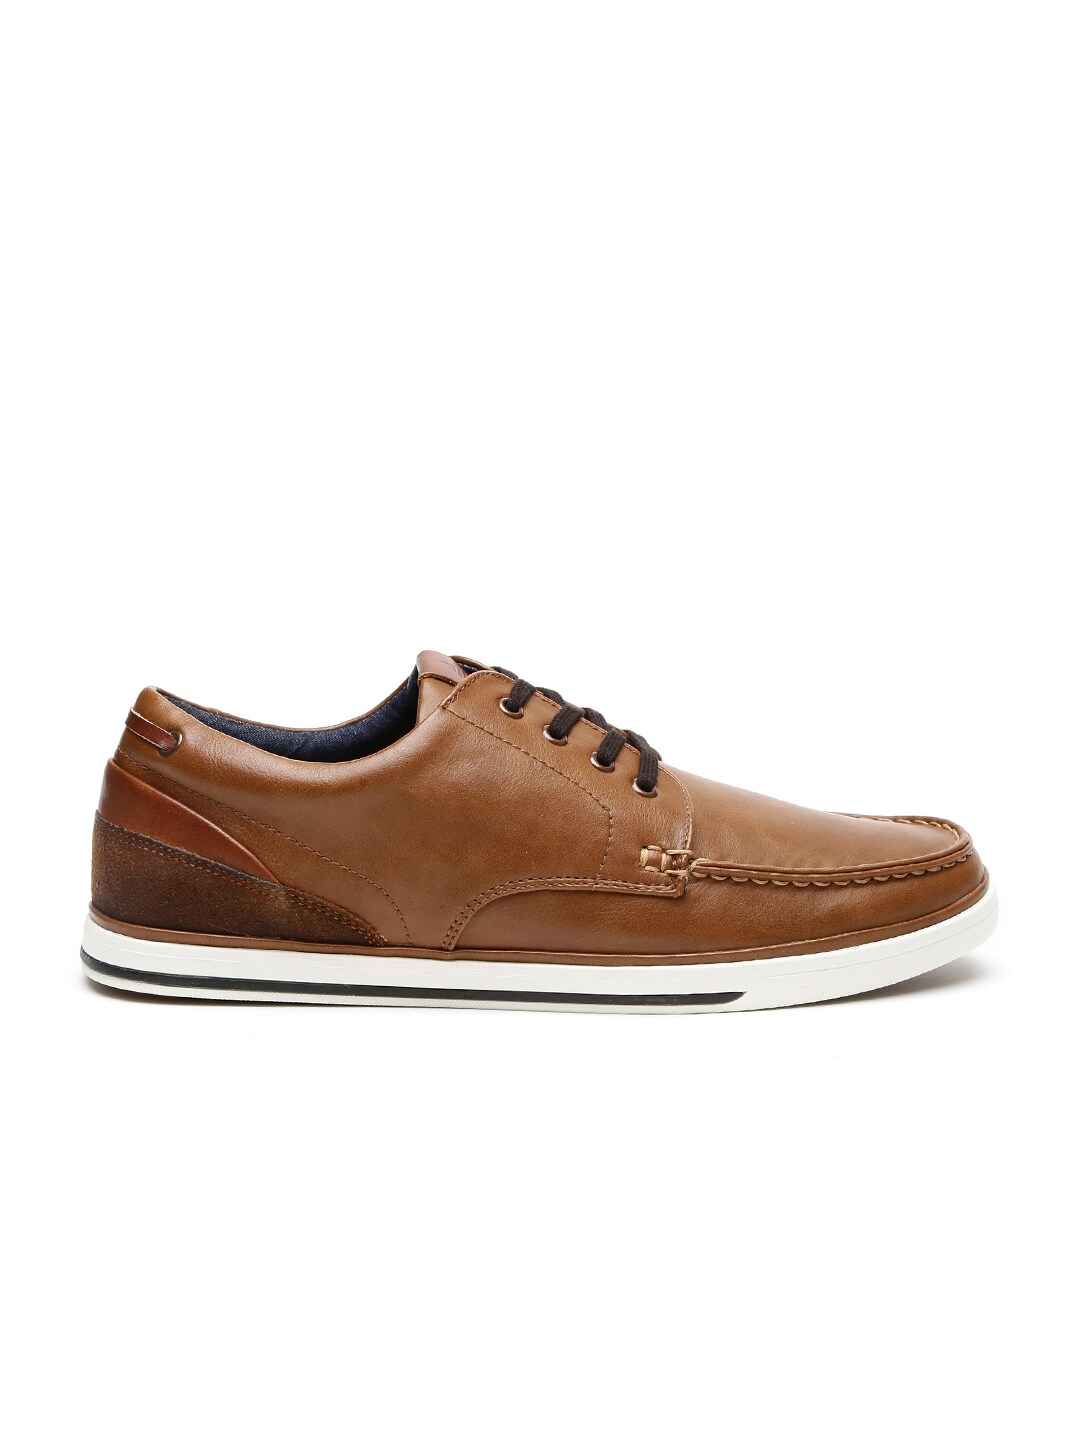 2e18dbdc249 Aldo myn1581682 Men Brown Solid Regular Sneakers - Best Price in ...